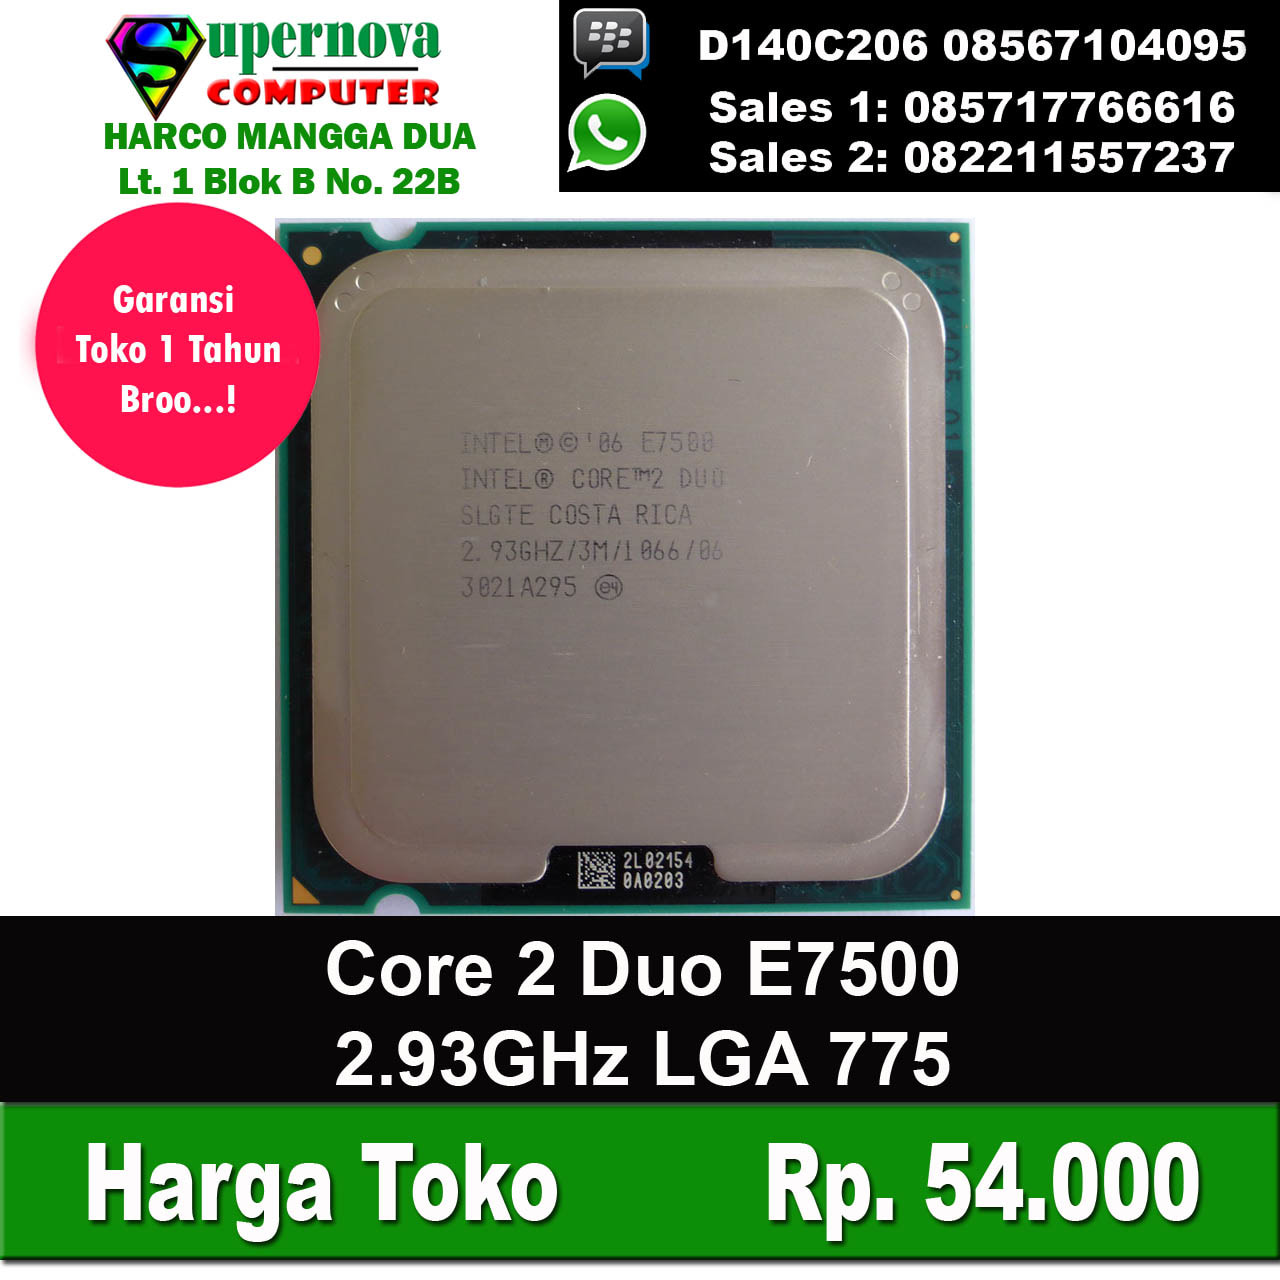 Jual Processor Intel Core 2 Duo E7500 293ghz Lga 775 Supernova Prosessor Computer Tokopedia